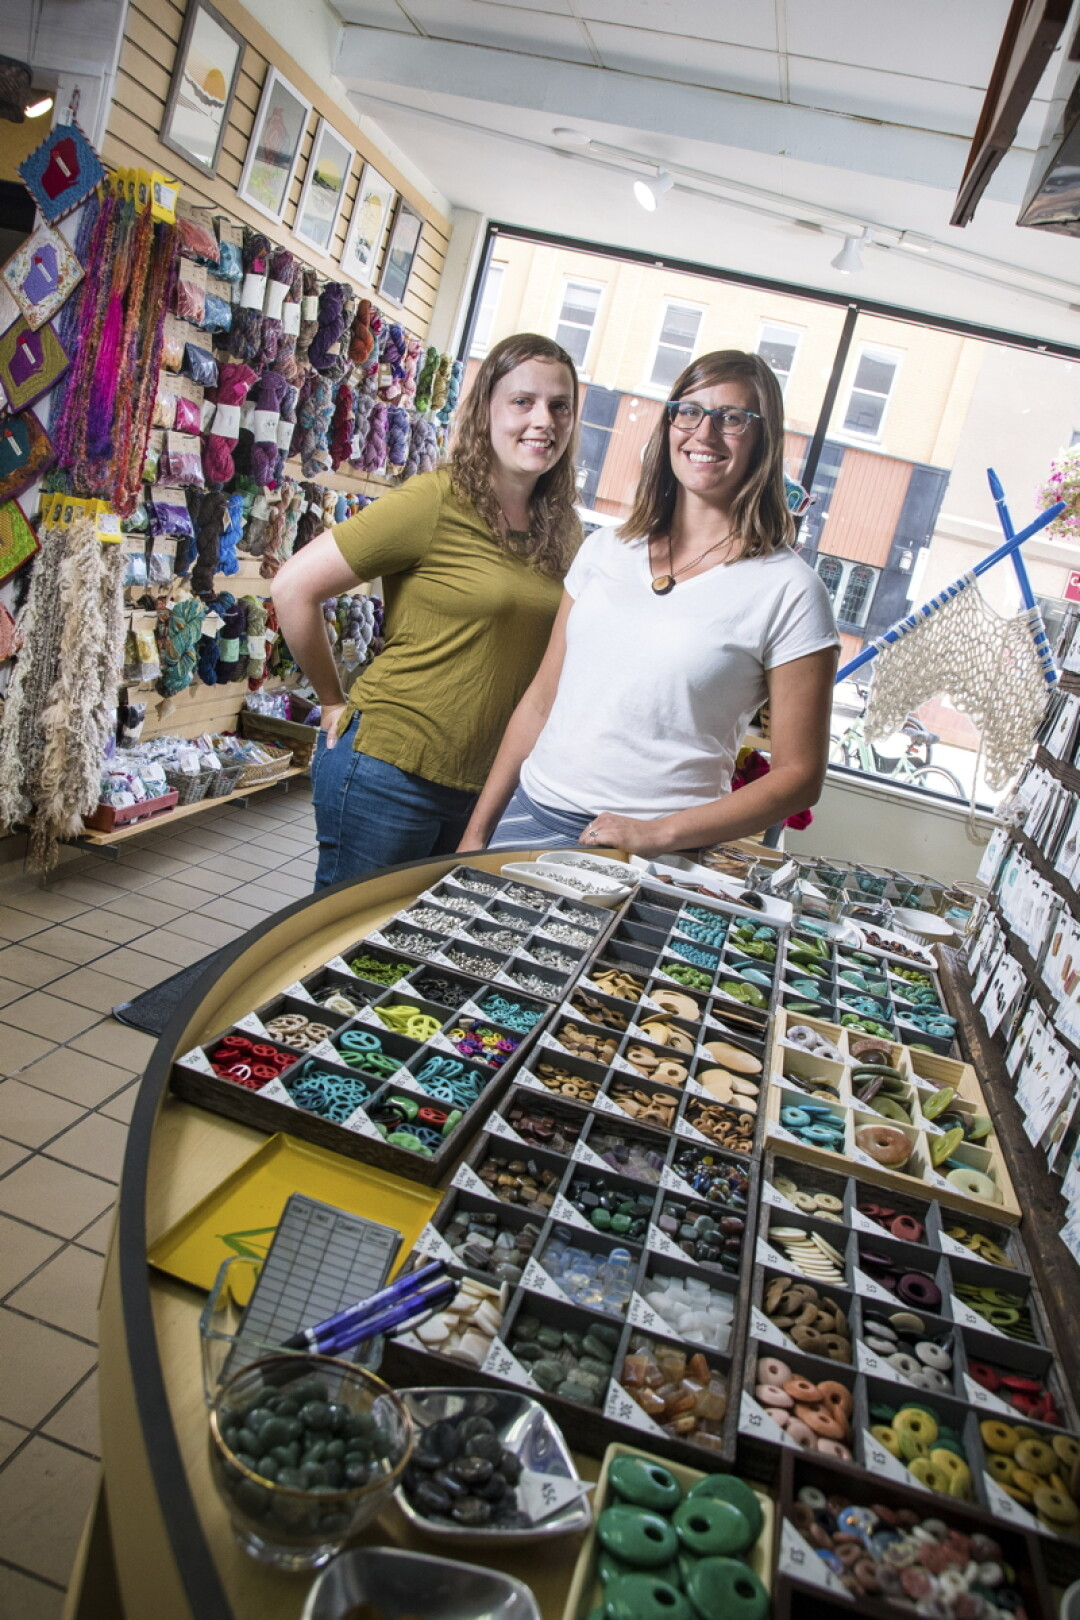 NICE THREADS. Above: Blue Boxer Arts/Tangled Up in Hue owners Erin Klaus and Jamie Kyser. Blue Boxer Arts features locally created fibers and beads, as well as classes and crafty meetups.